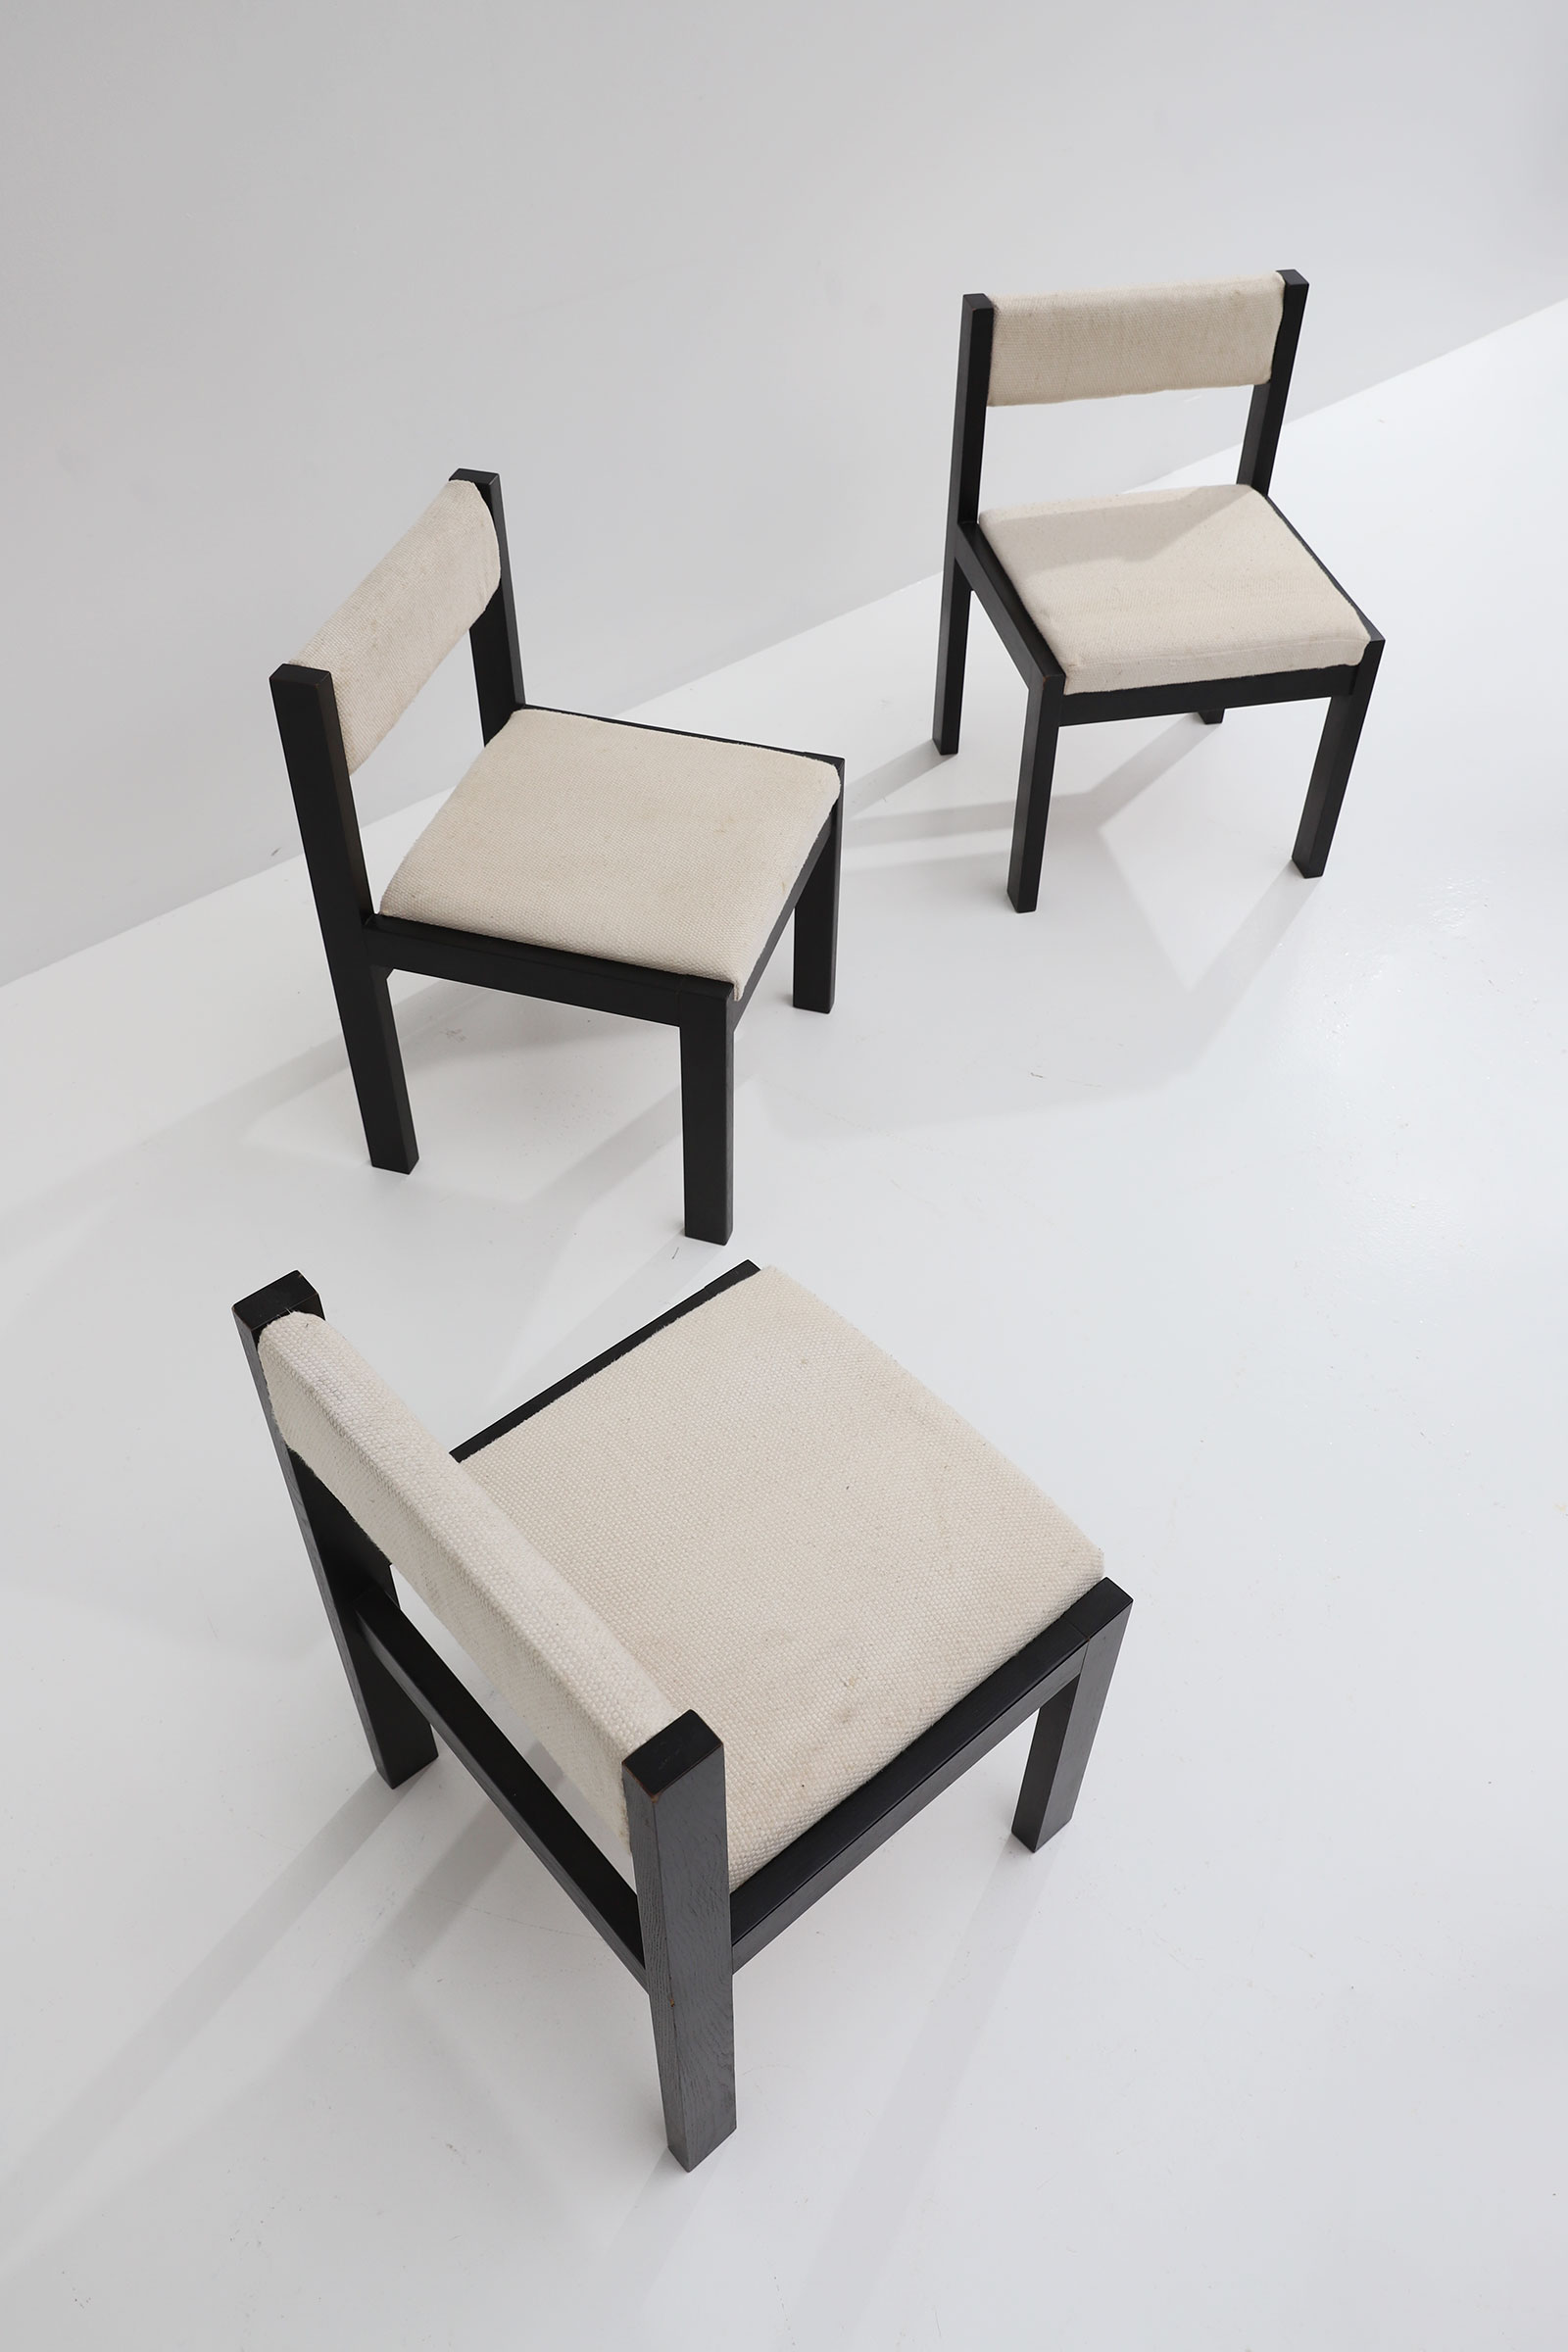 6 chairsimage 3